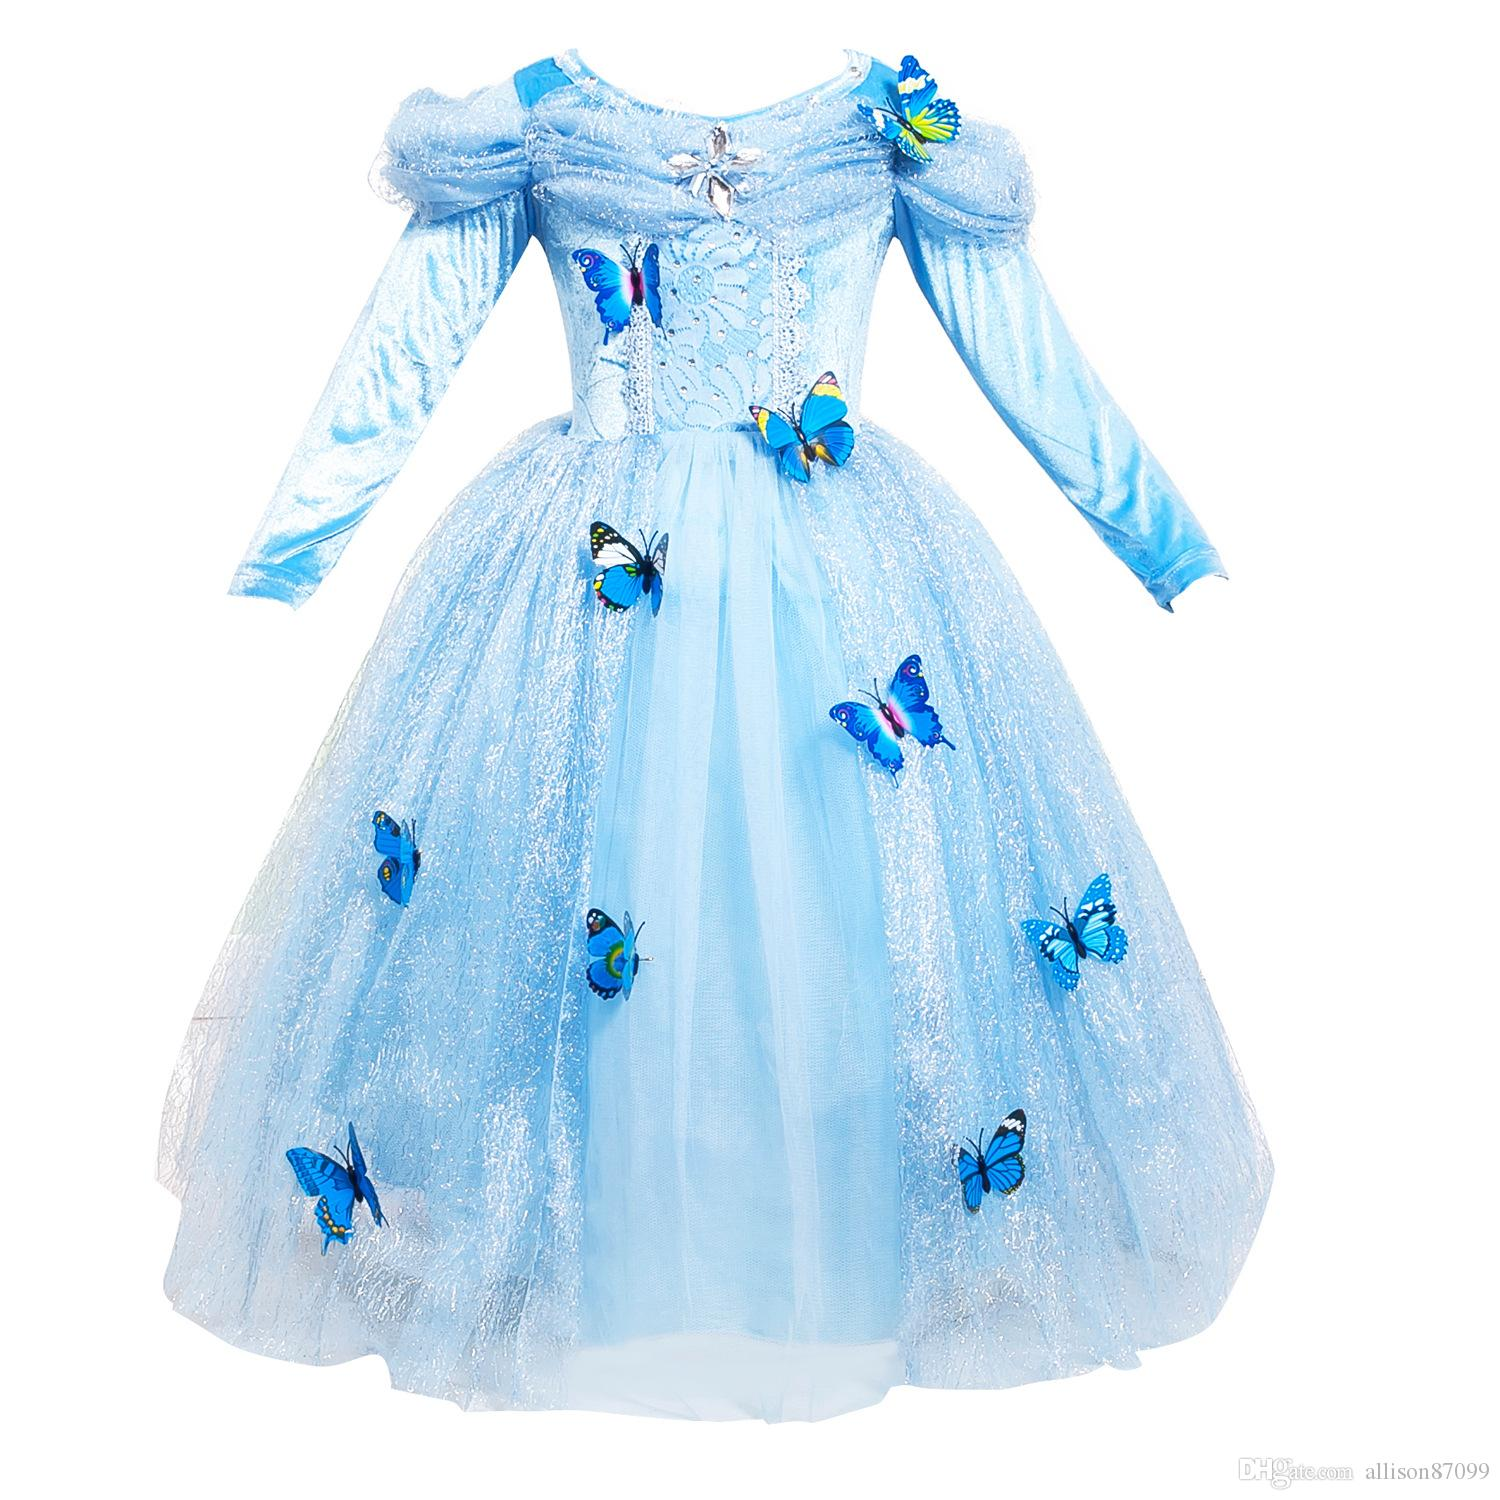 Christmas Gifts For Girls 2019.2019 Students Christmas Gift Girls Dress Cosplay Princess Dresses Long Sleeve Butterfly Party Birthday Gifts Puff Sleeve Blue 2017 Winter From